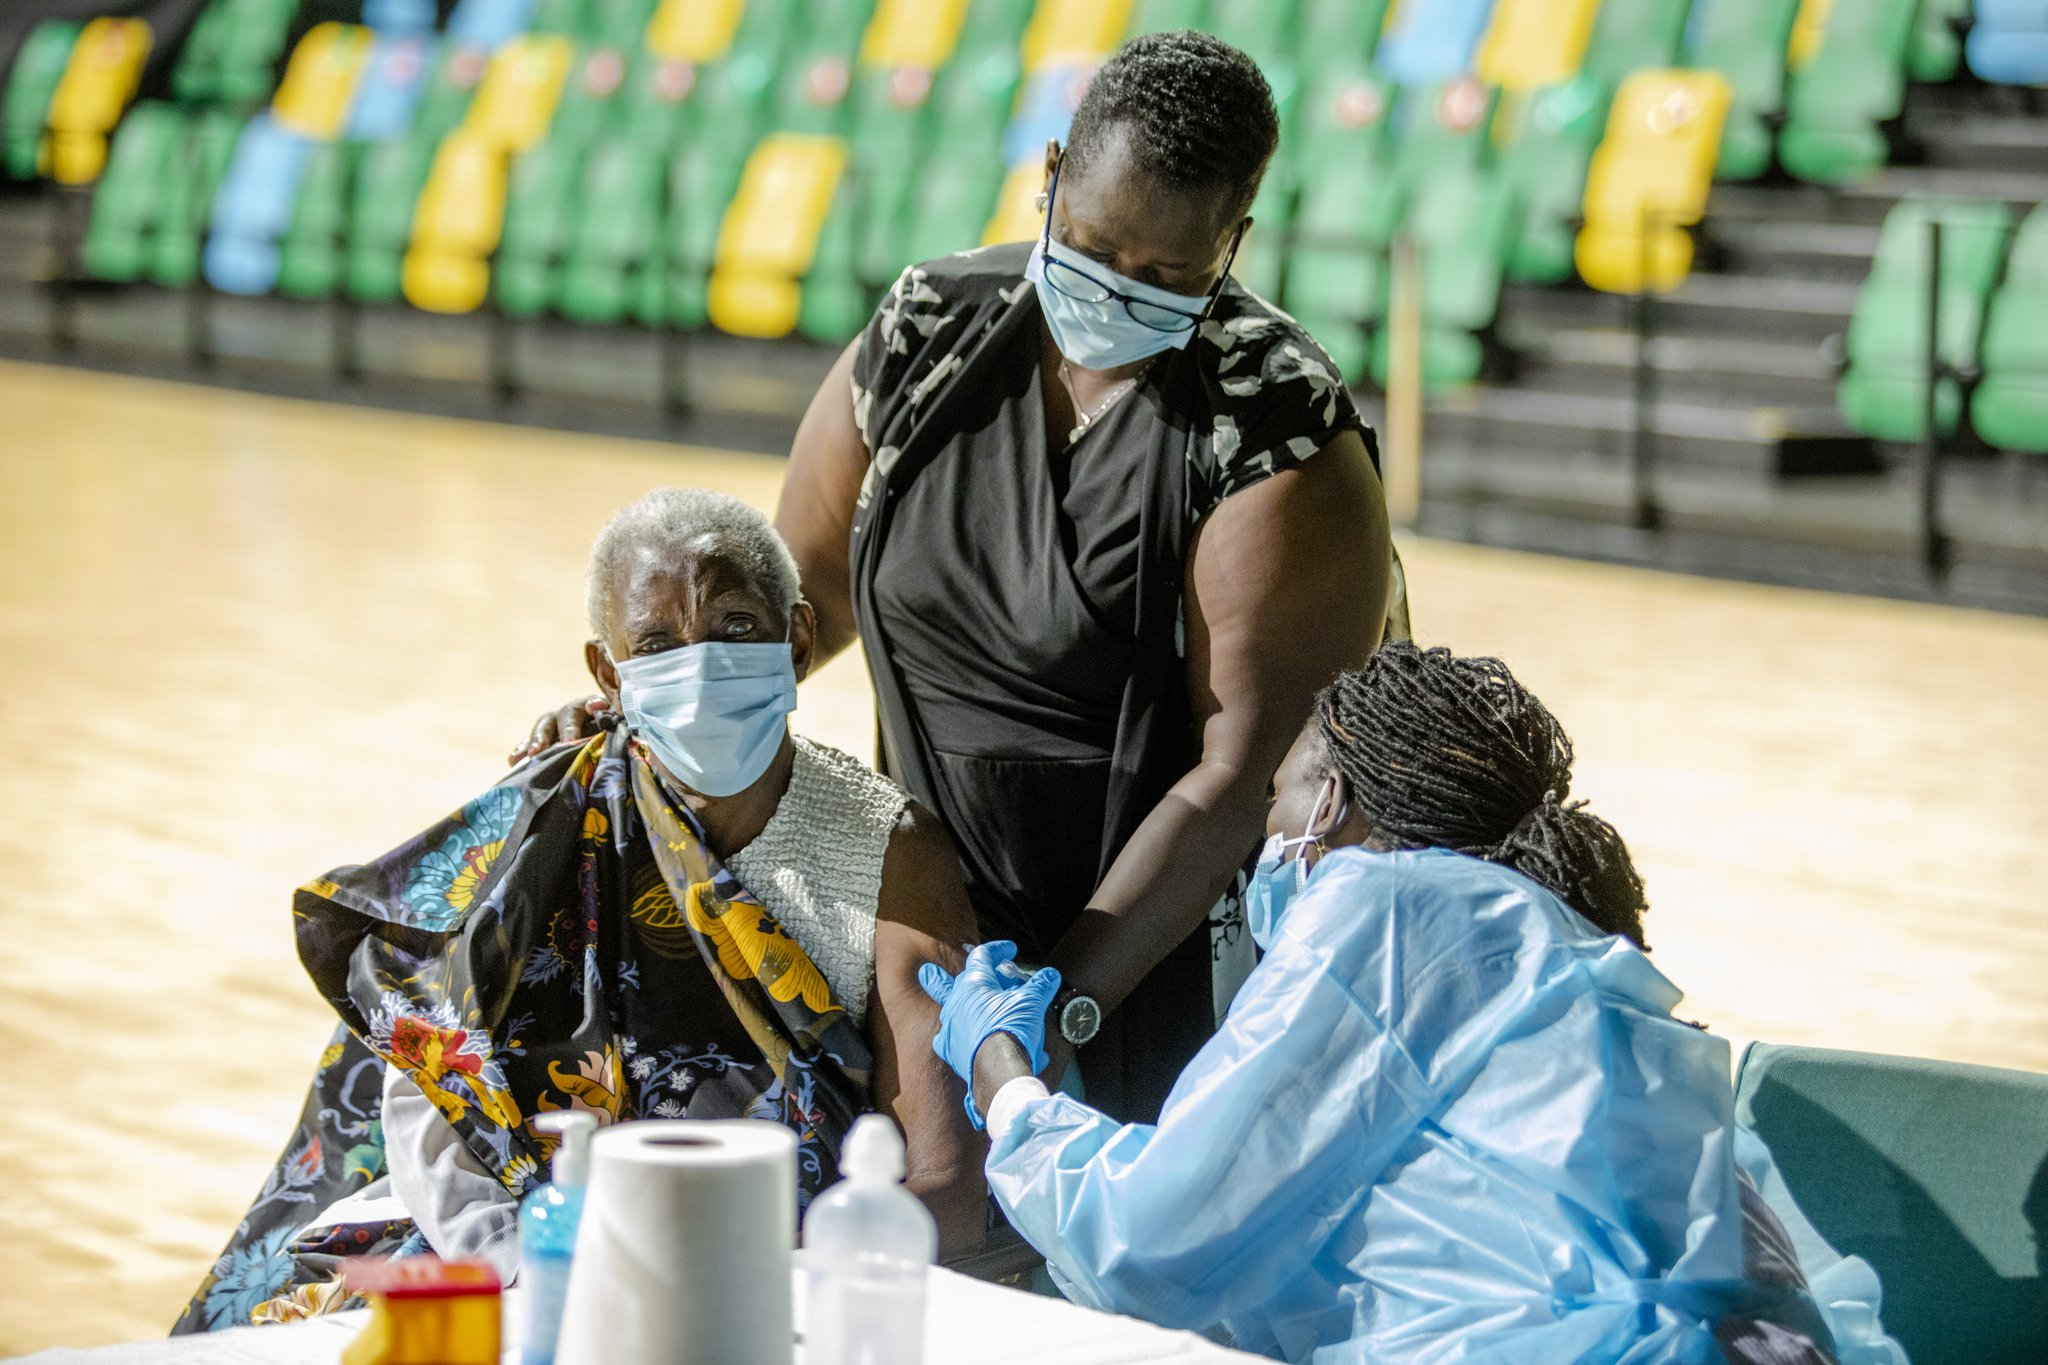 Rwanda vaccination is continuing countrywide targeting different high risk groups and other frontline workers, elders, people with chronic conditions, refugees, prisoners (PHOTO/Courtesy).